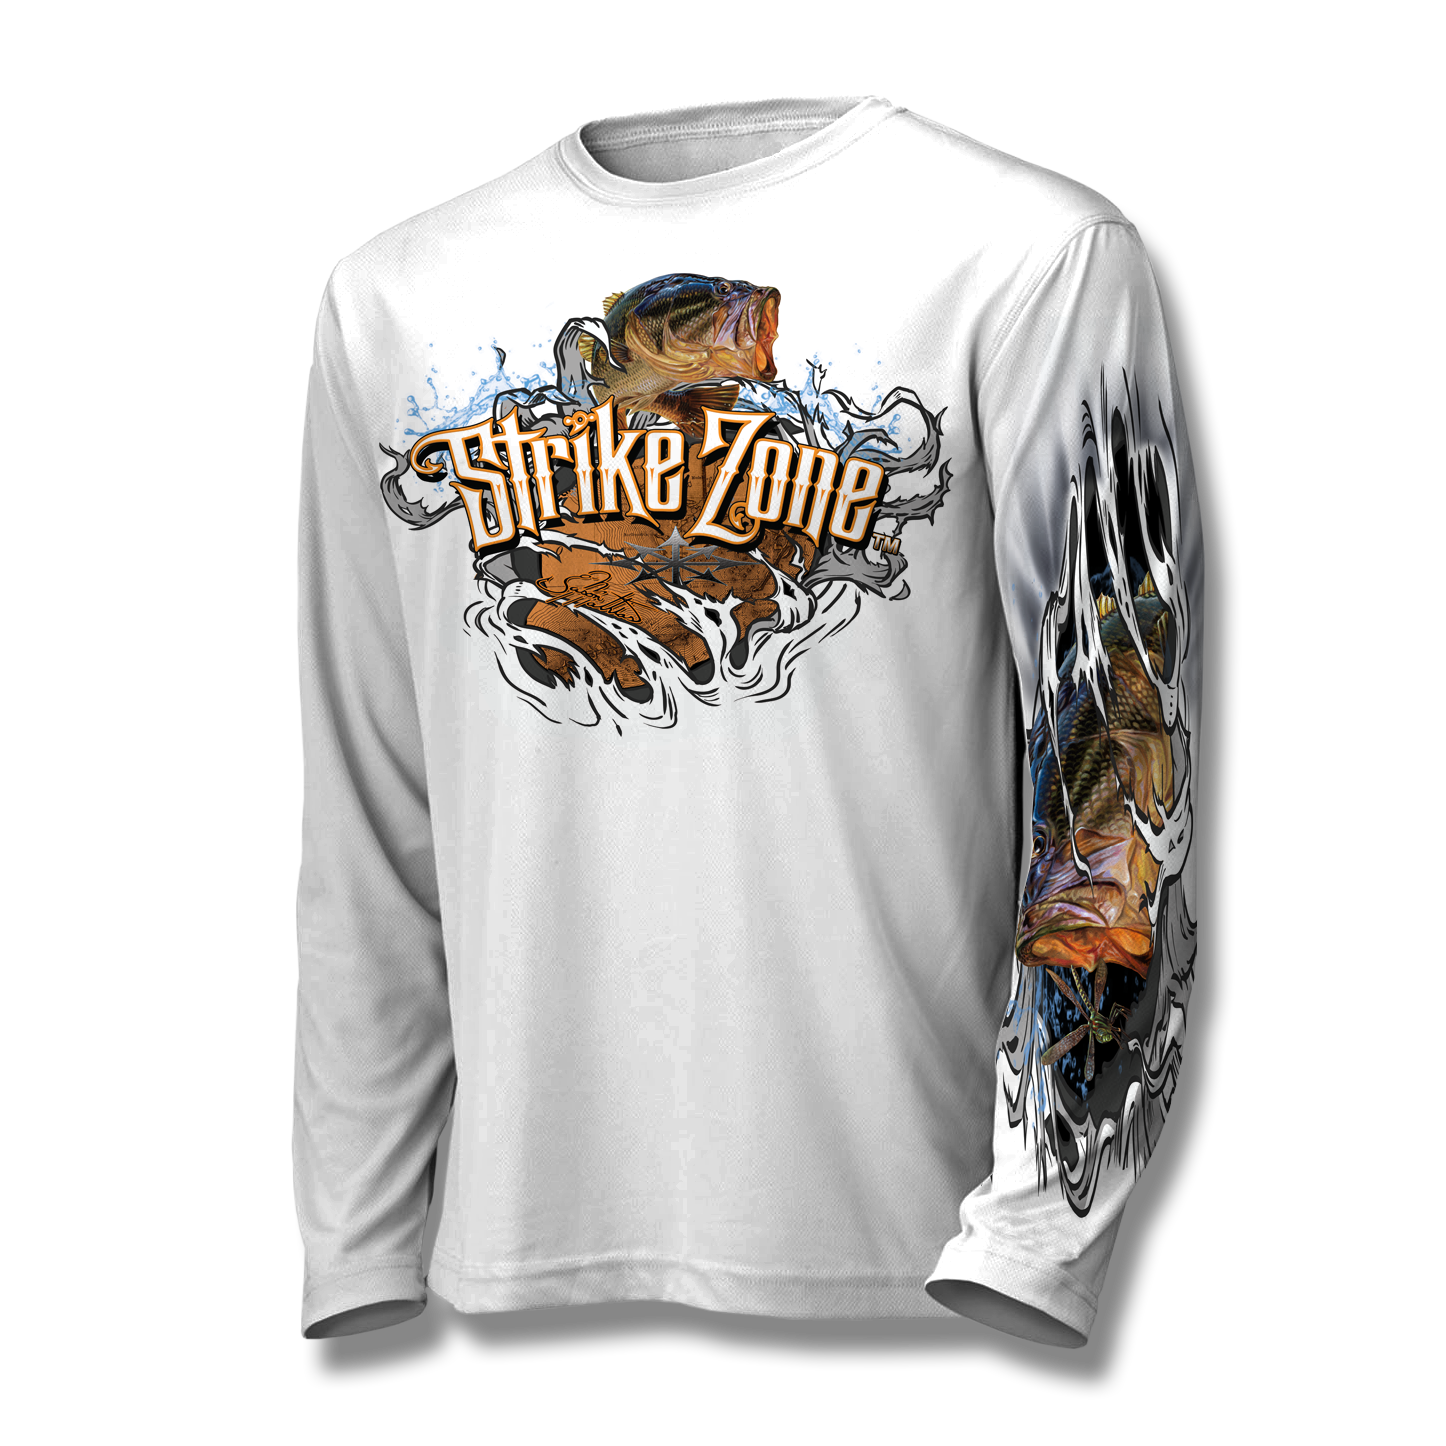 jason-mathias-strike-zone-white-front-bass-fishing-shirt.png